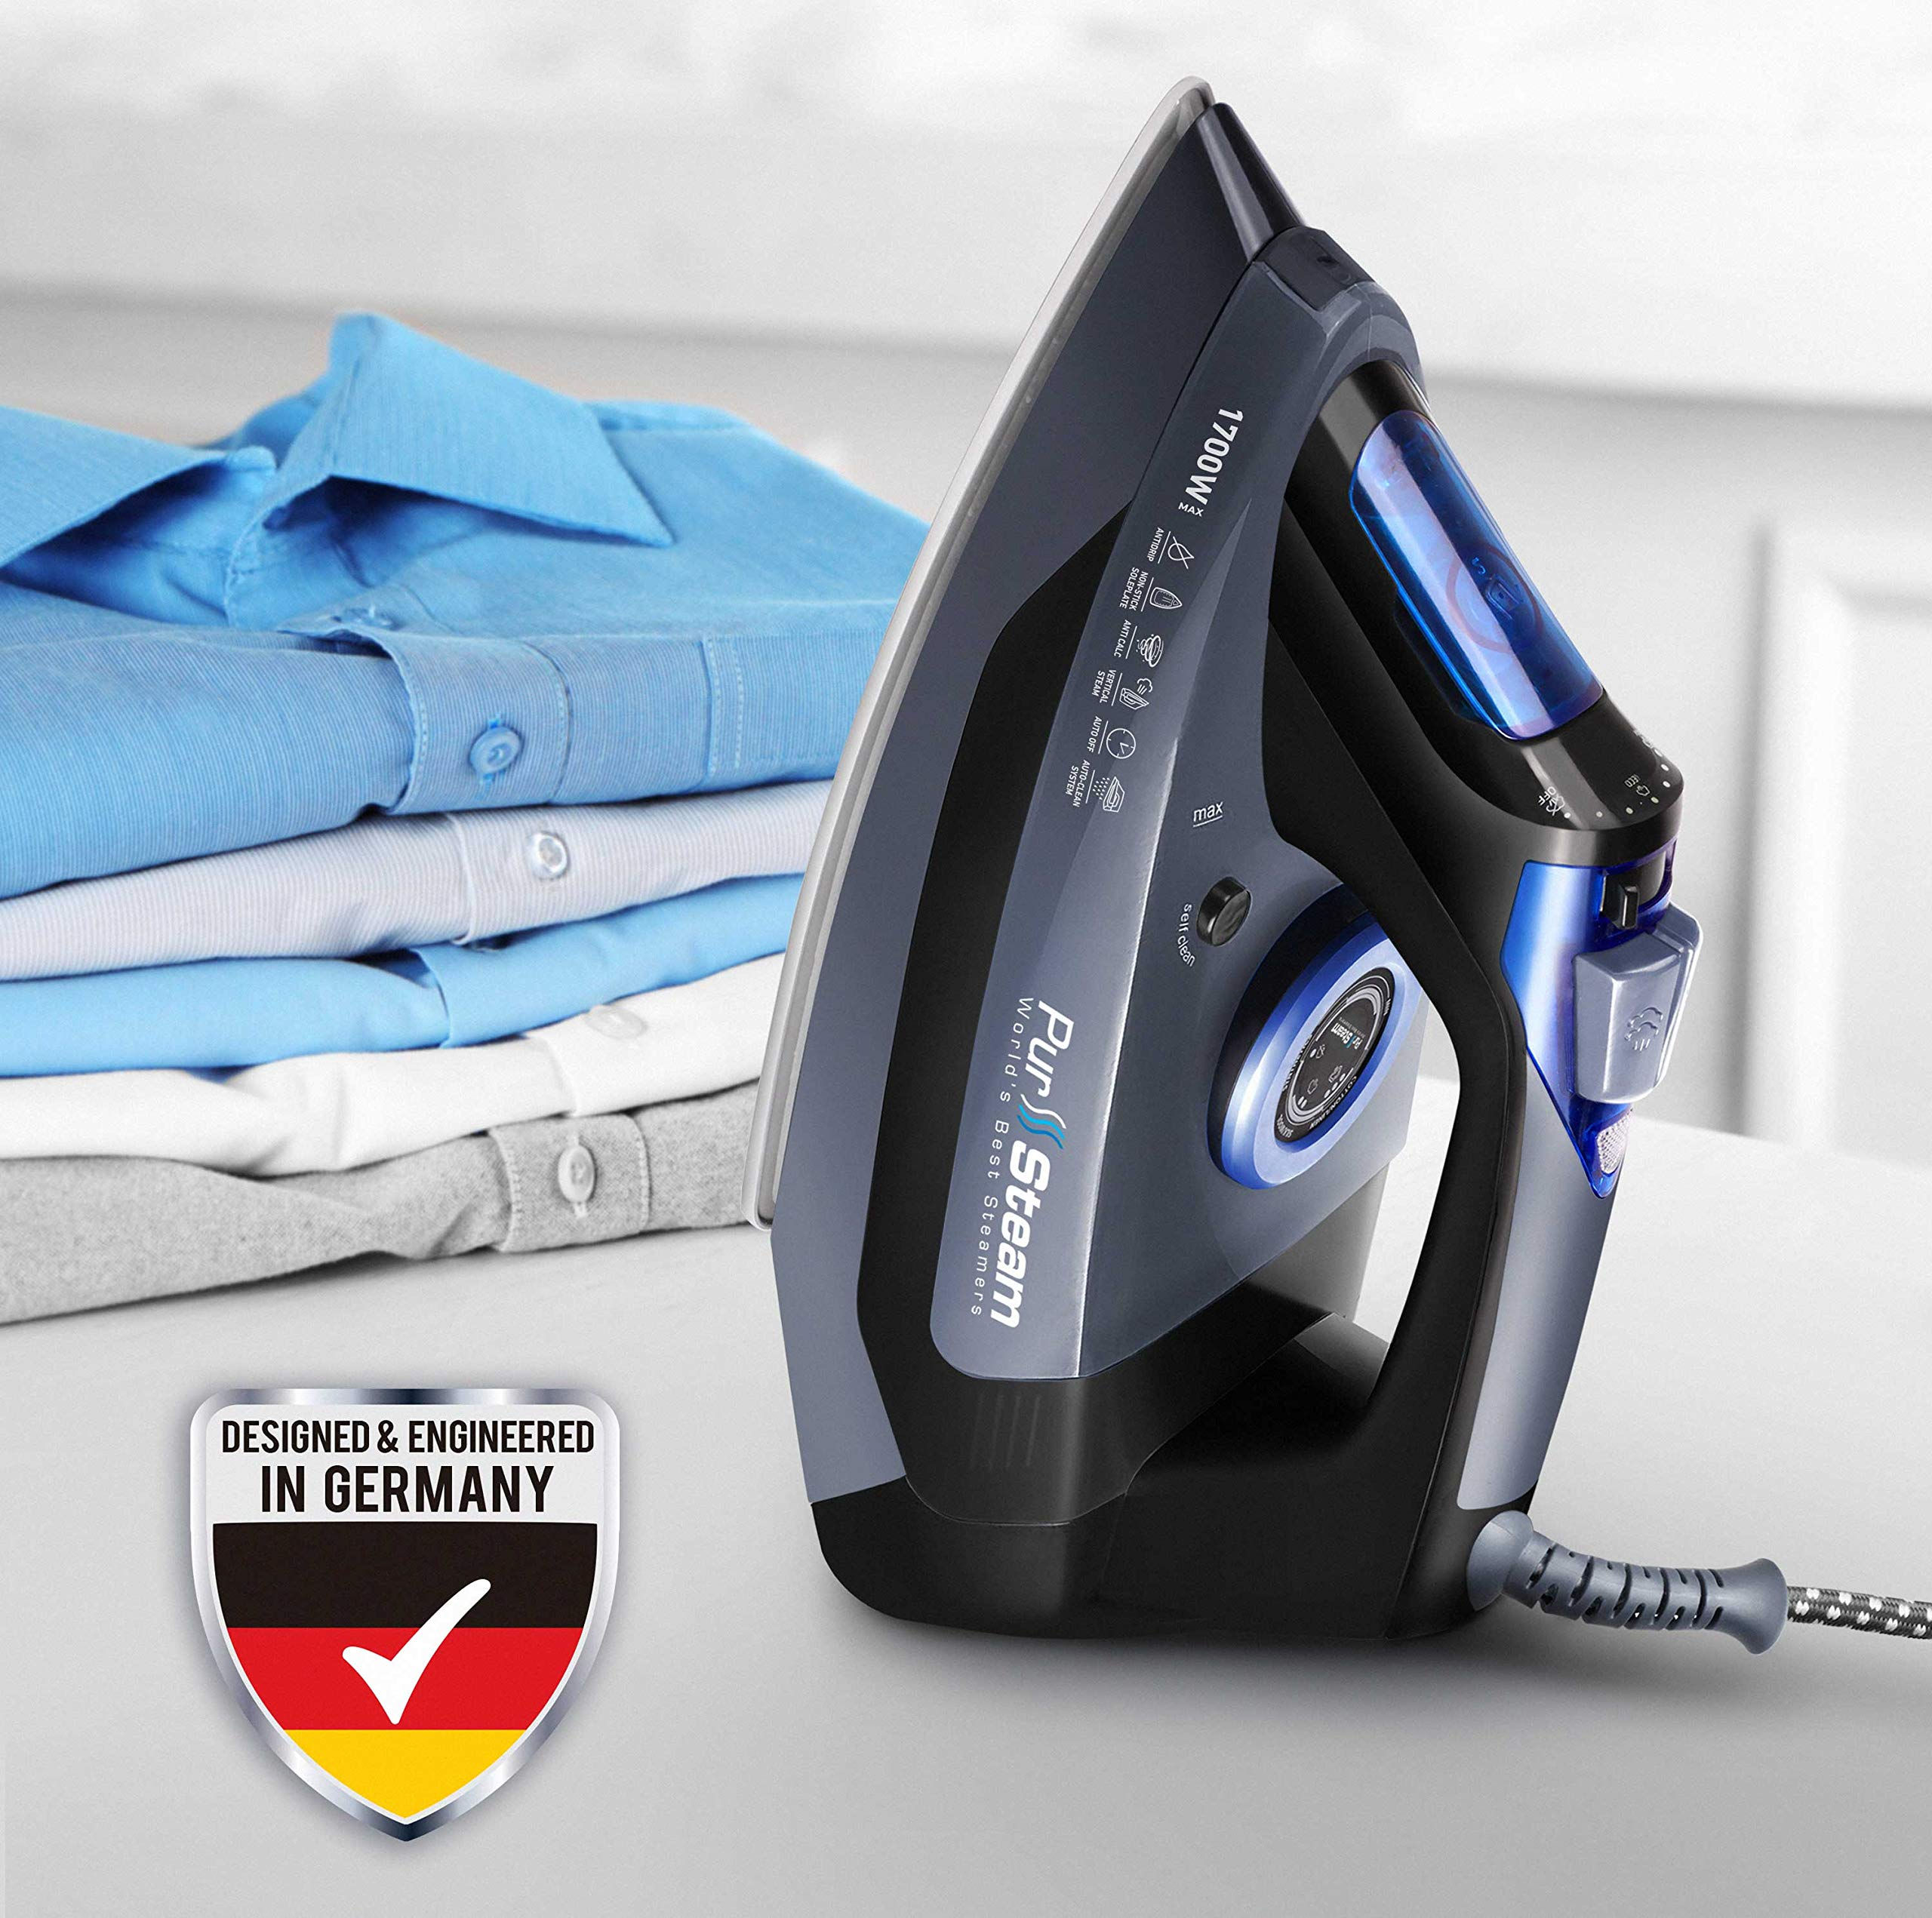 Professional Grade 1700W Steam Iron for Clothes with Rapid Even Heat Scratch Resistant Stainless Steel Sole Plate, True Position Axial Aligned Steam Holes, Self-Cleaning Function + Thermostat Dial by PurSteam World's Best Steamers (Image #6)